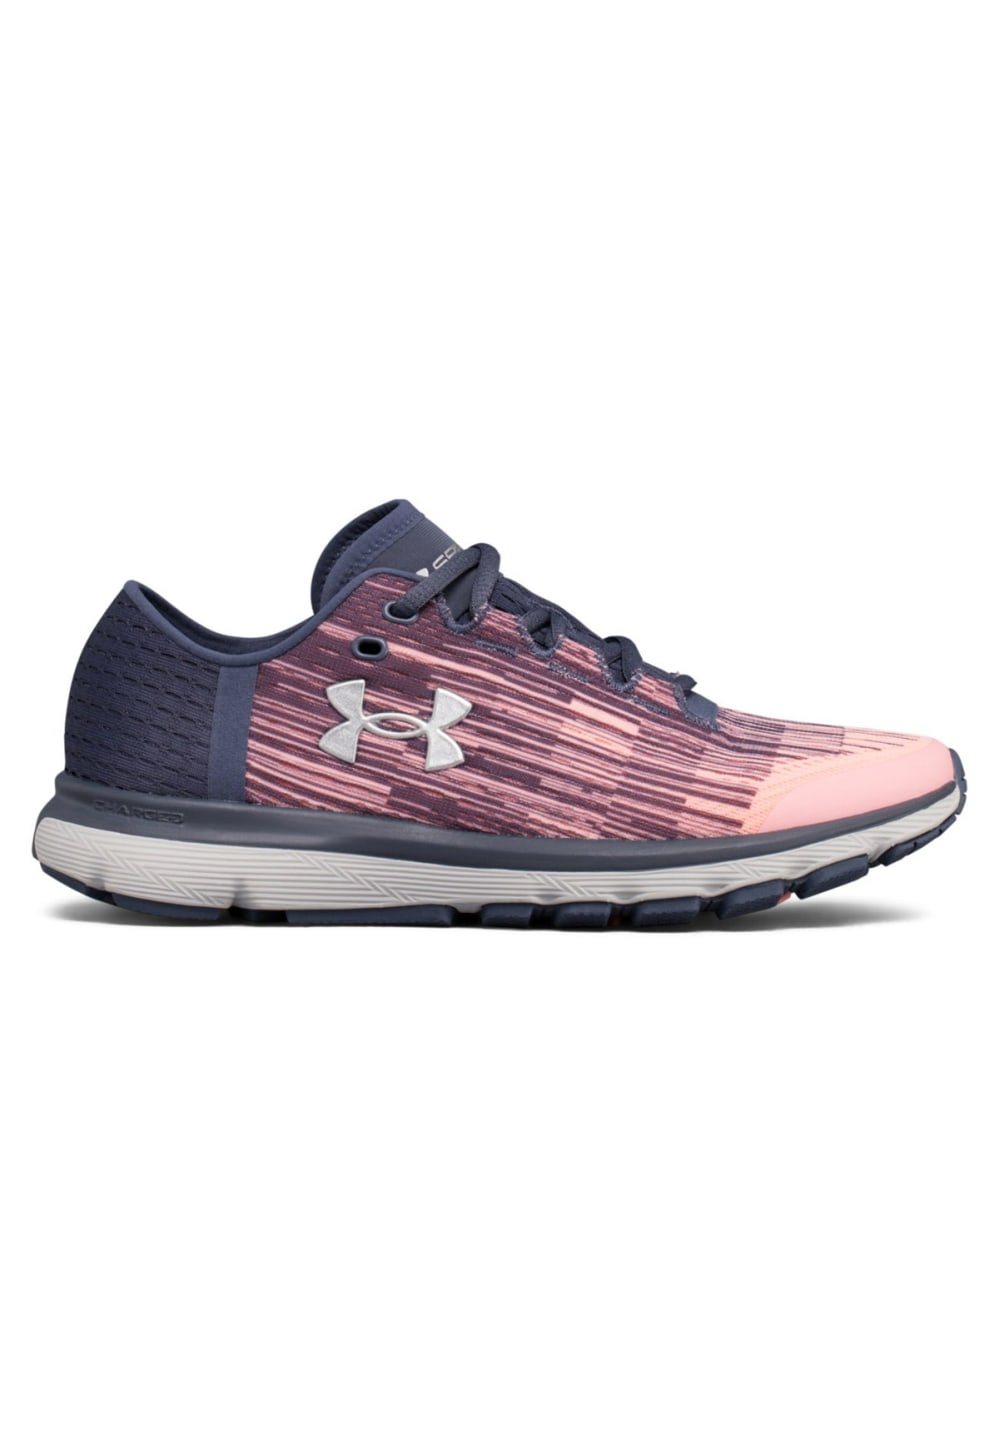 more photos d5a32 ca47e Under Armour Speedform Velociti Graphic - Running shoes for Women - Pink